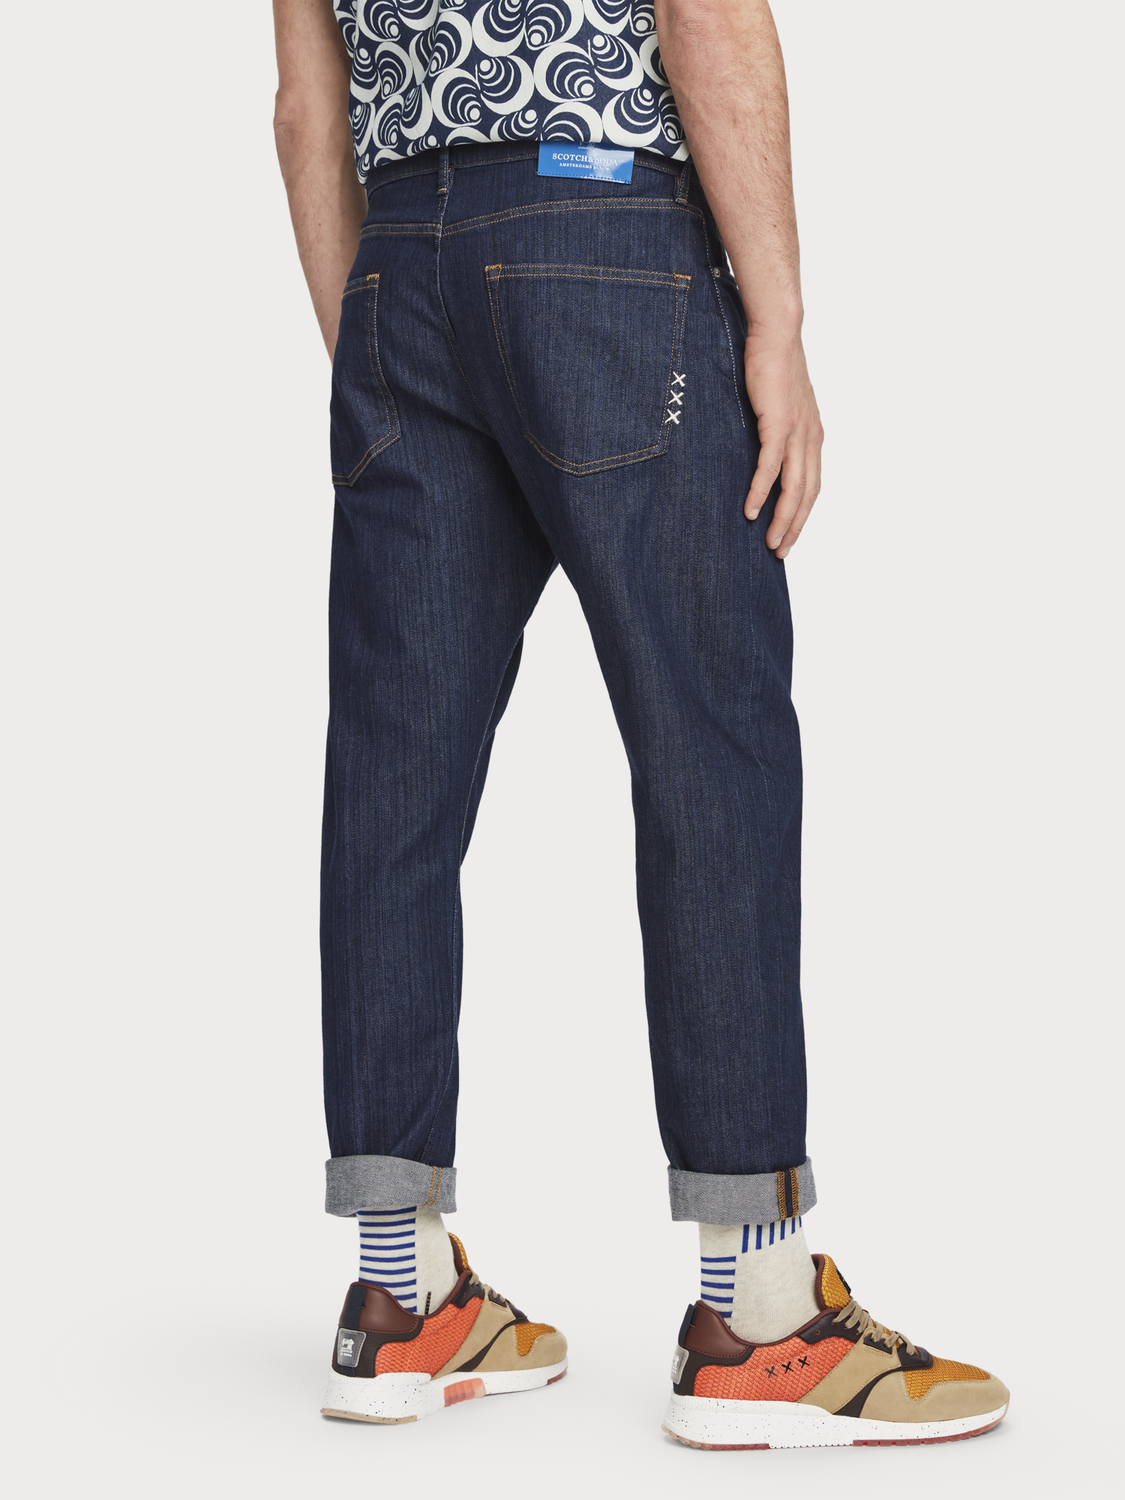 Herrar Dean - Blank Page | Jeans med loose tapered fit